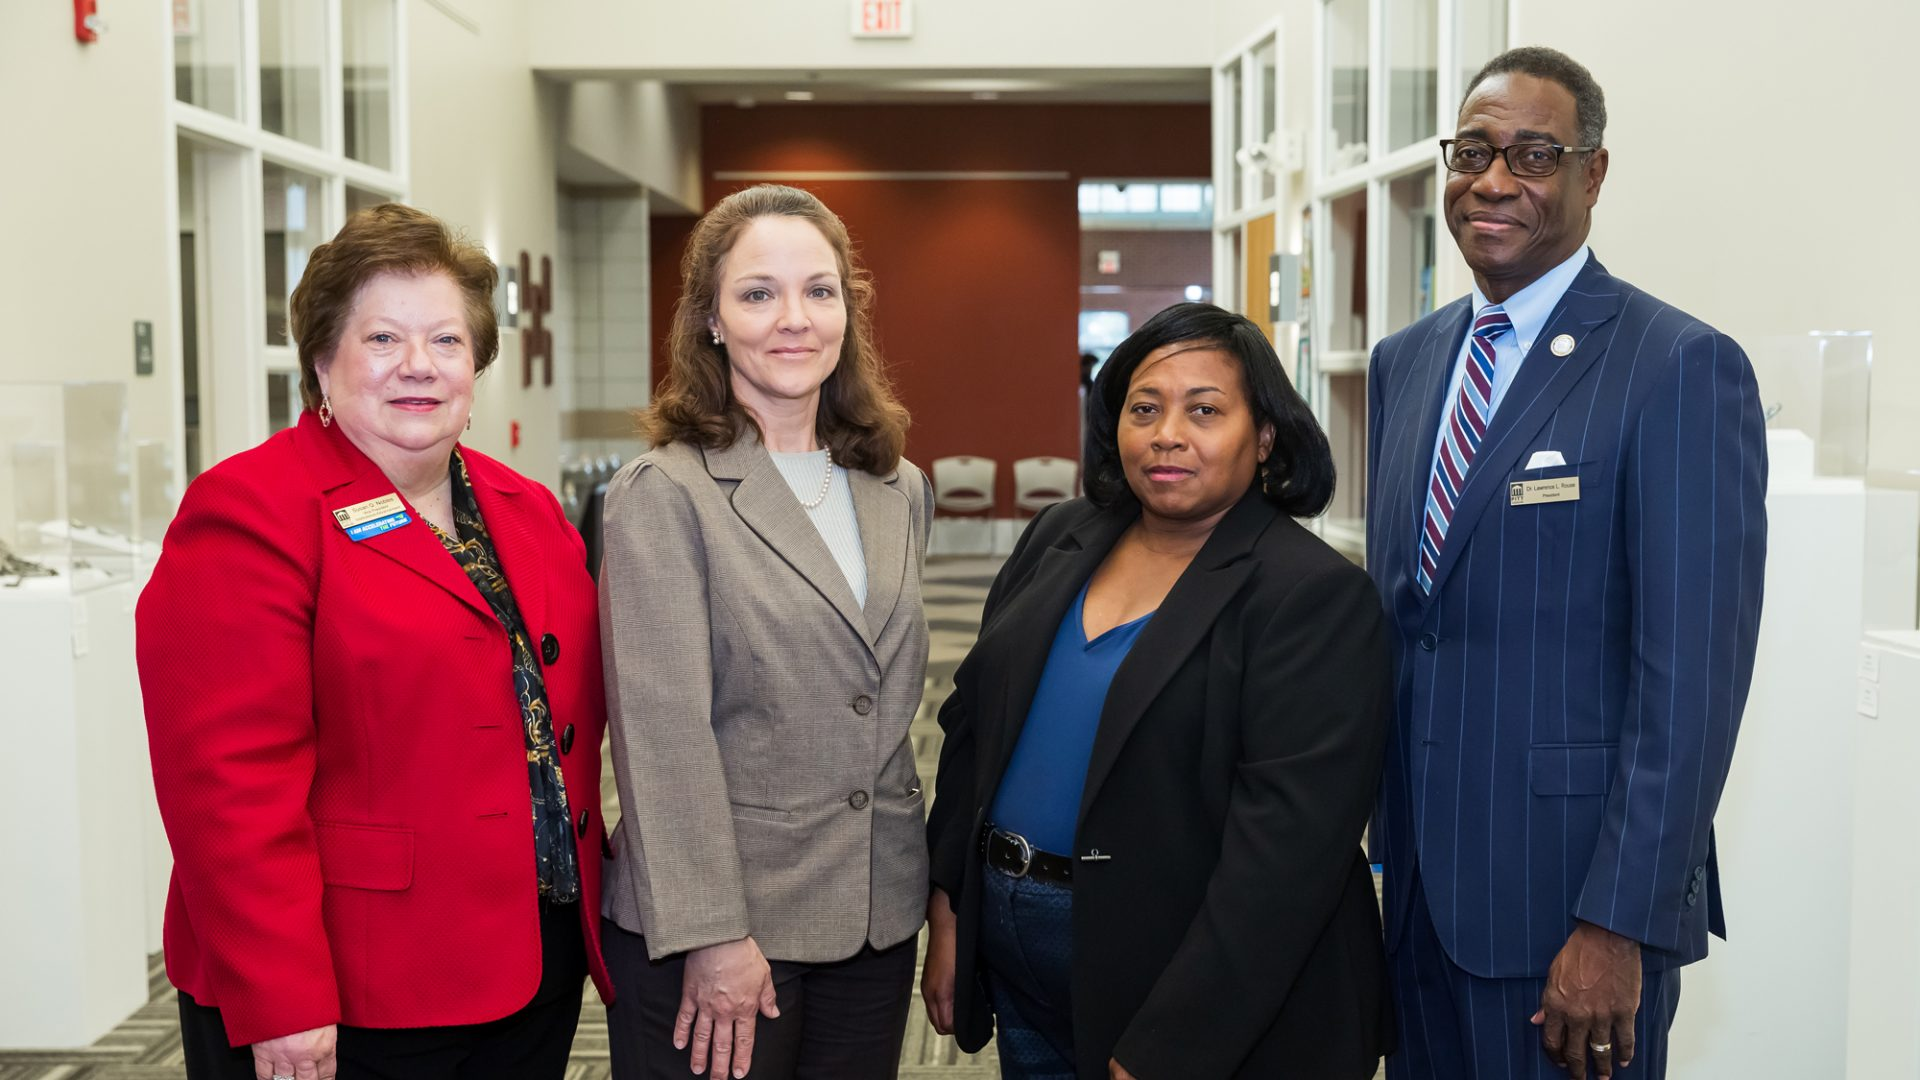 PCC graduate Dawn Fletcher (second from left) has received the William Rawlinson Scholarship. On hand for the presentation are, left to right: PCC Vice President of Institutional Advancement Susan Nobles, PCC Veterans Affairs Coordinator Sonji Rowsom and PCC President Lawrence Rouse.